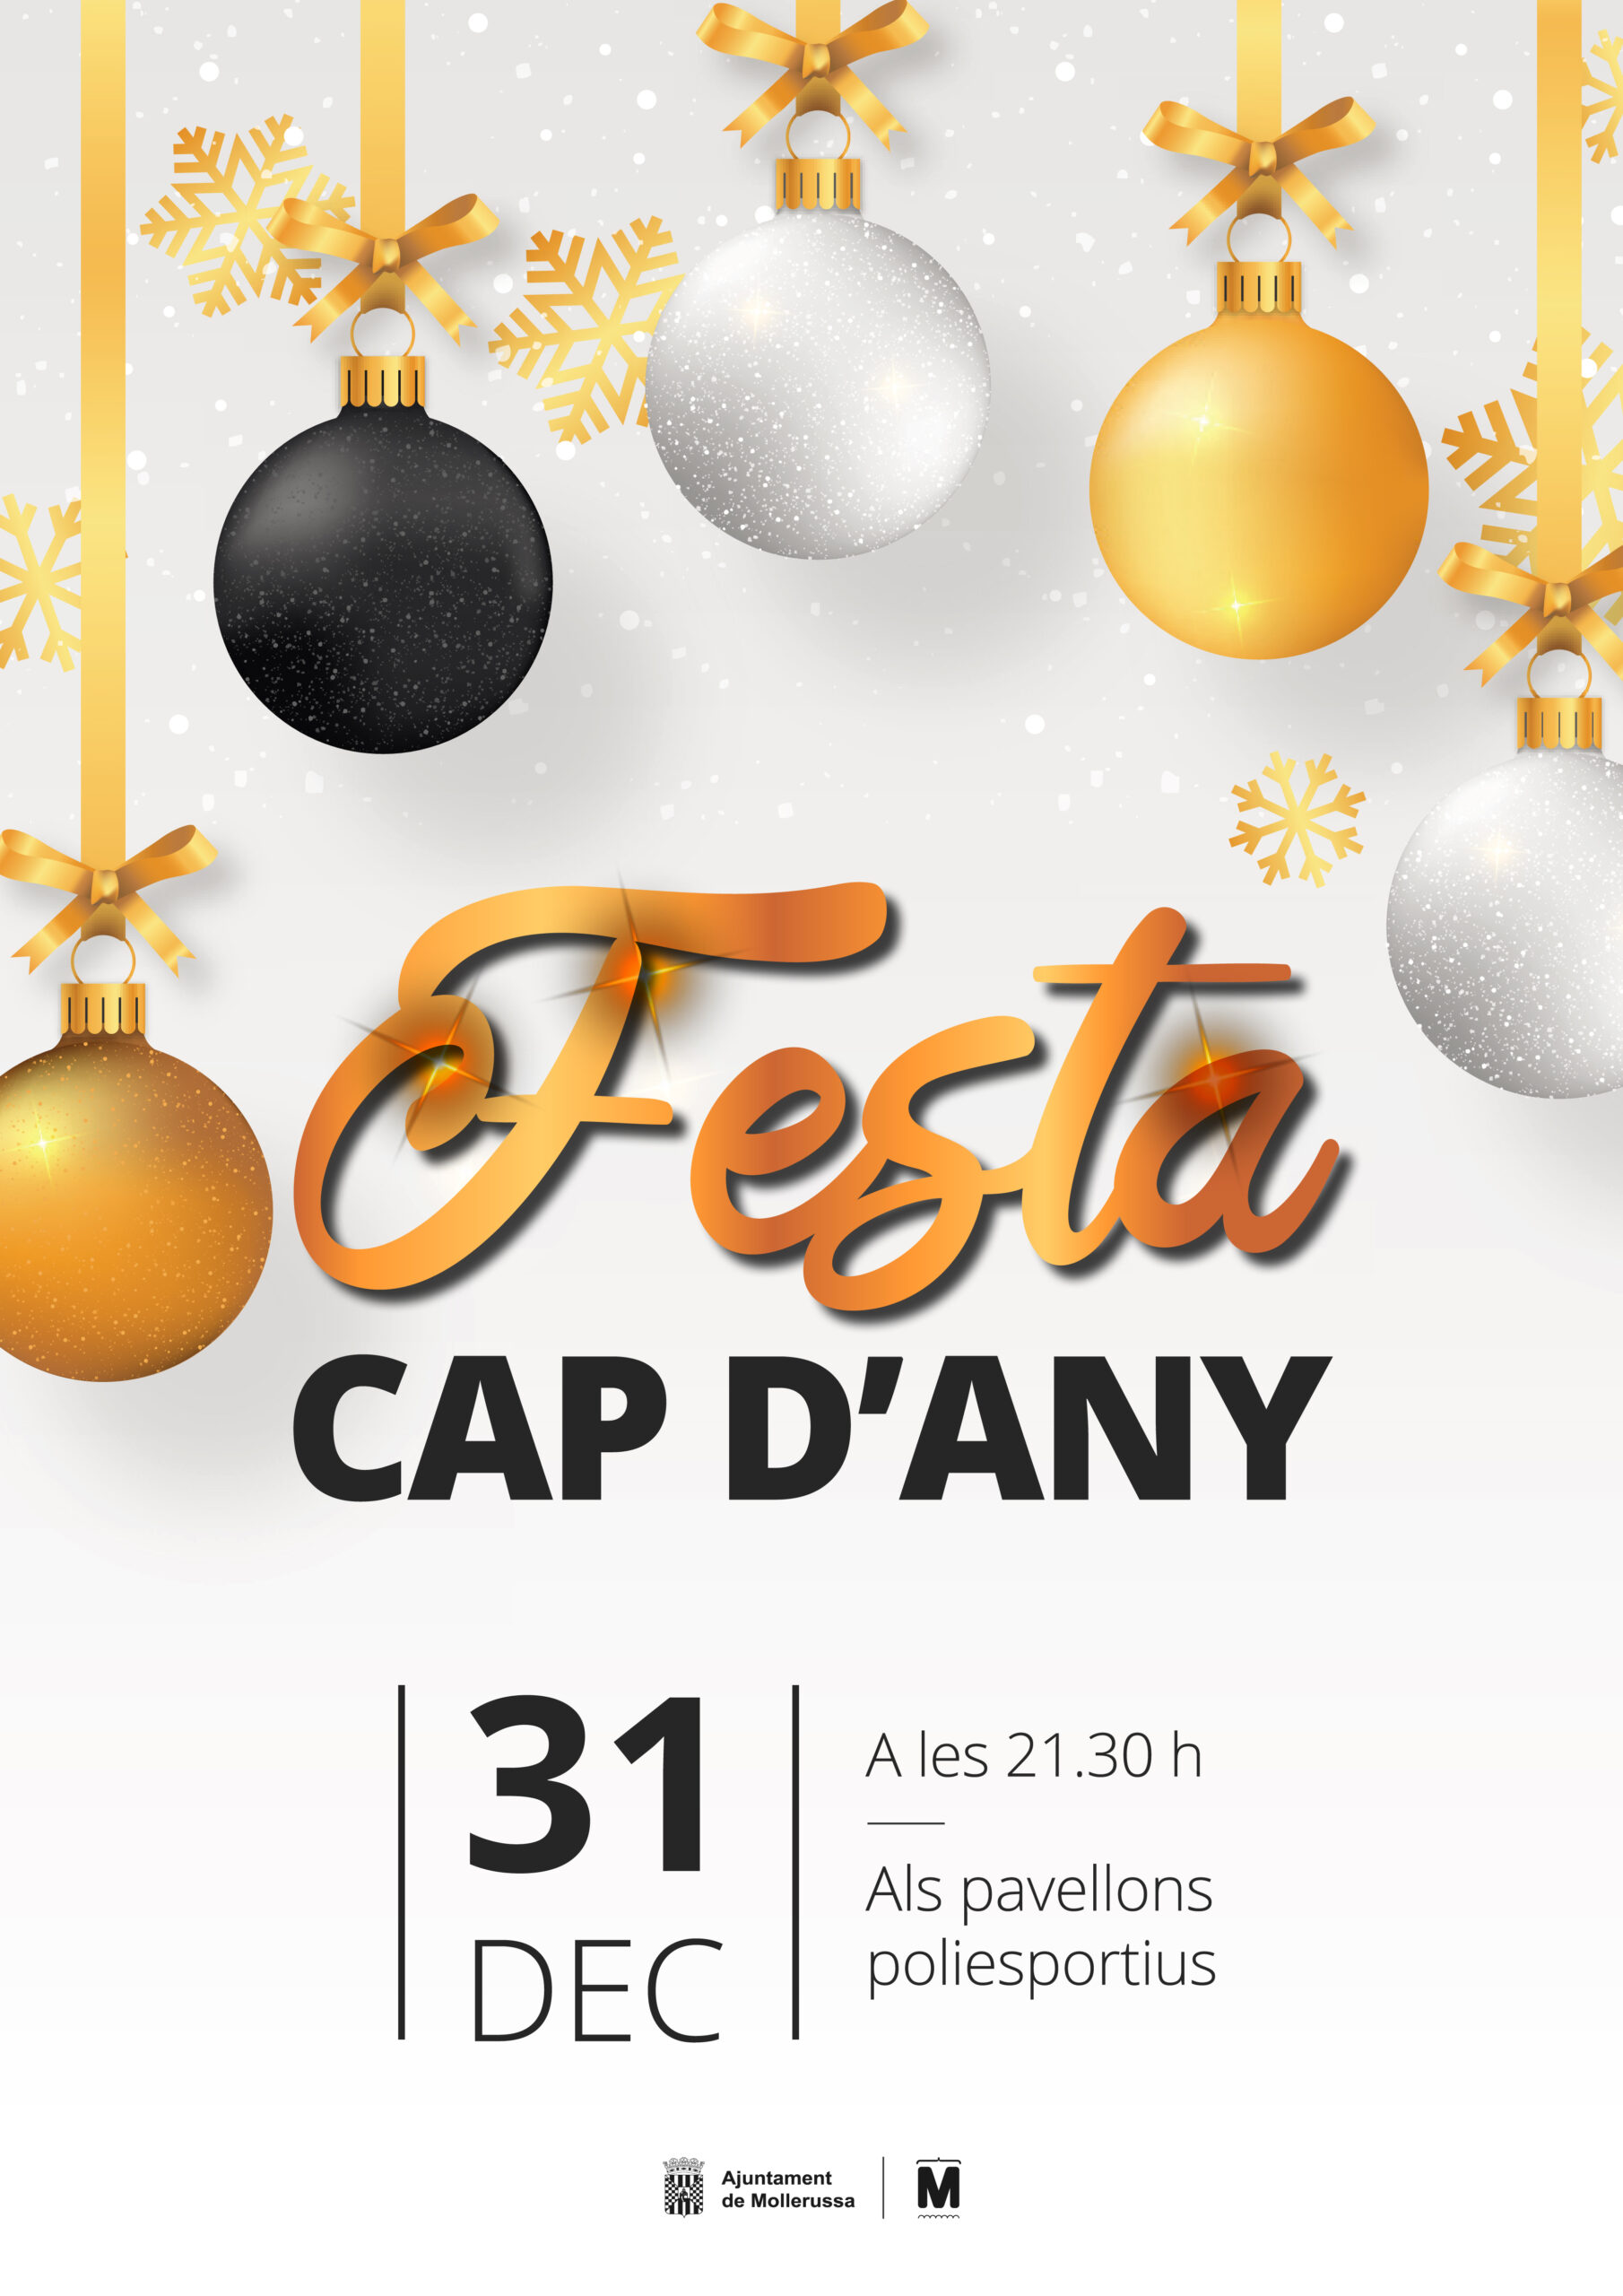 Cartell Cap dAny.indd